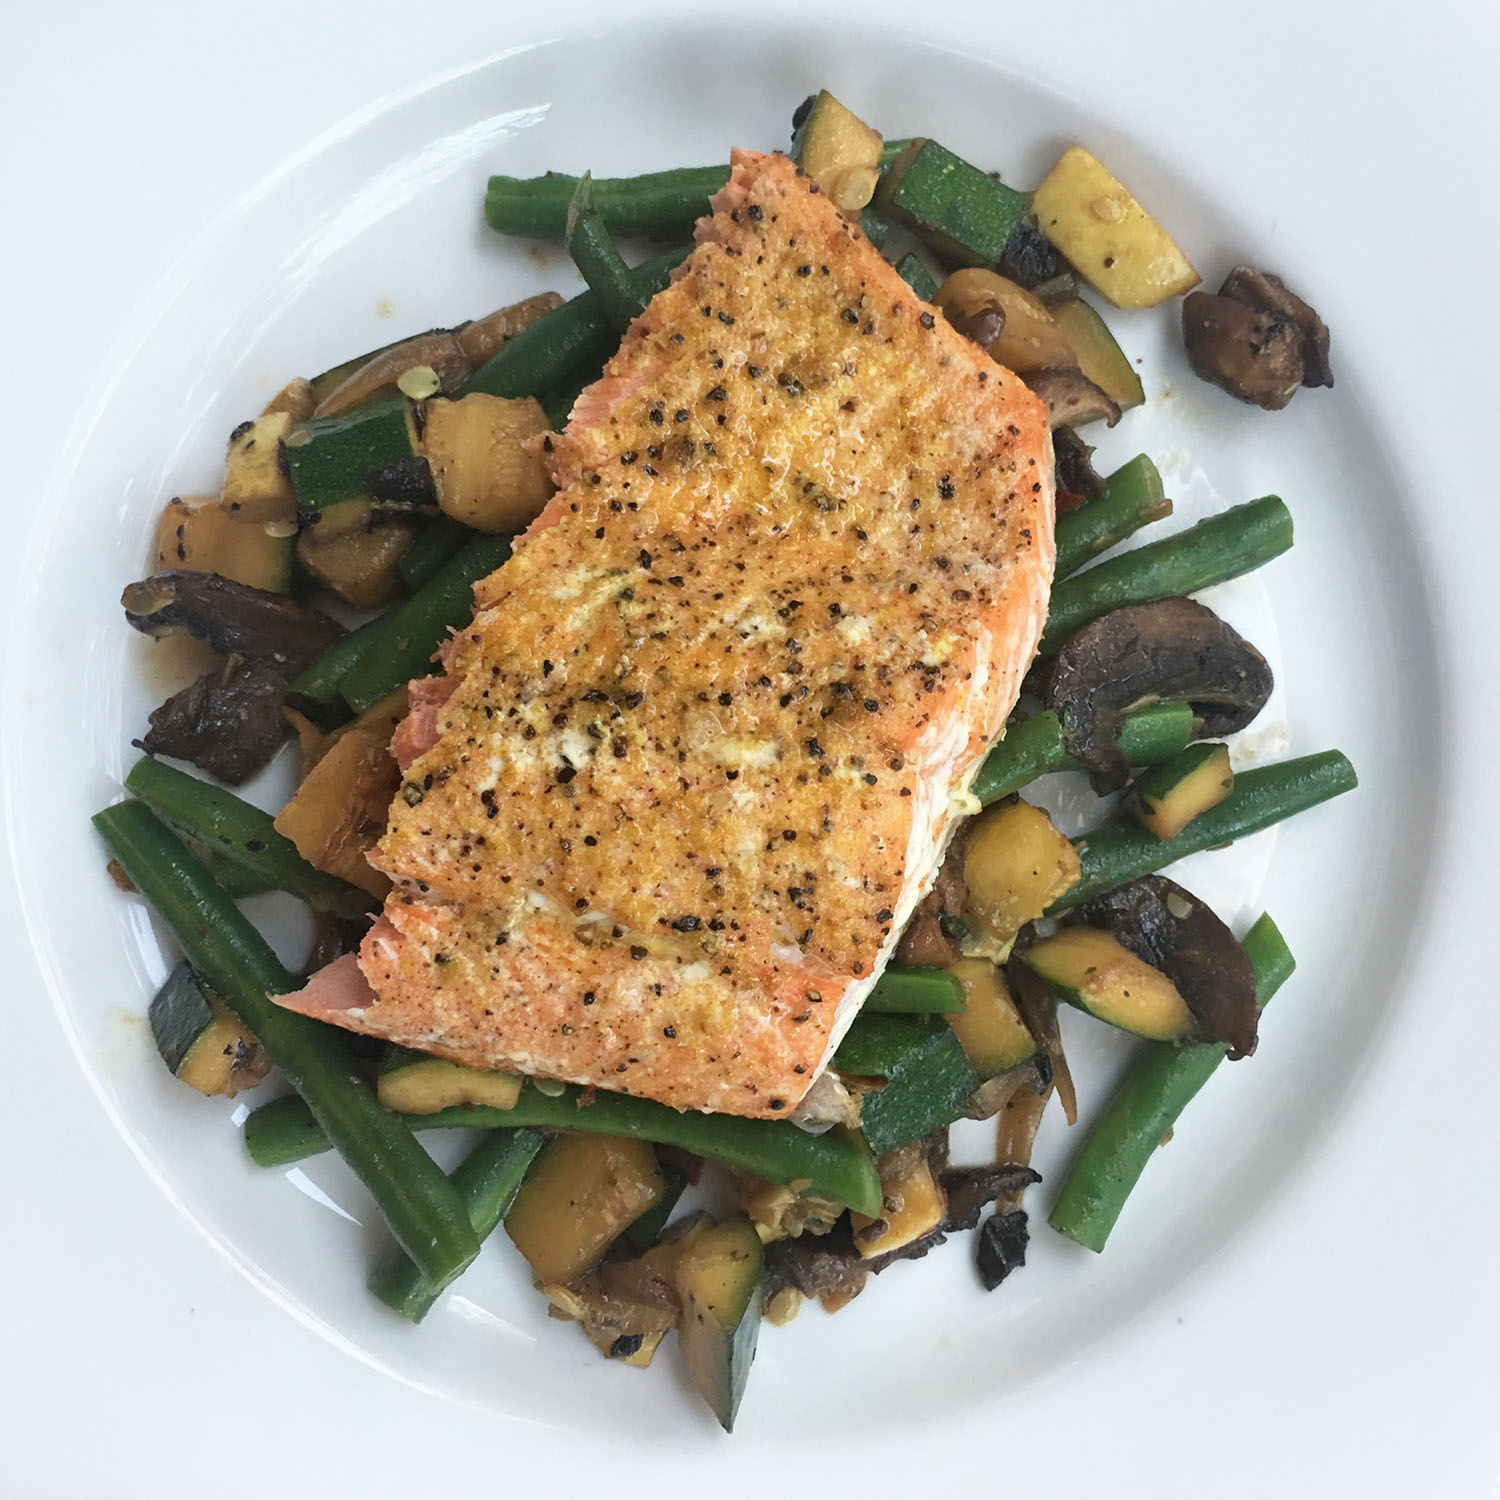 LEMON PEPPER SALMON WITH SAUTEED GREEN BEANS, ZUCCHINI AND MUSHROOMS